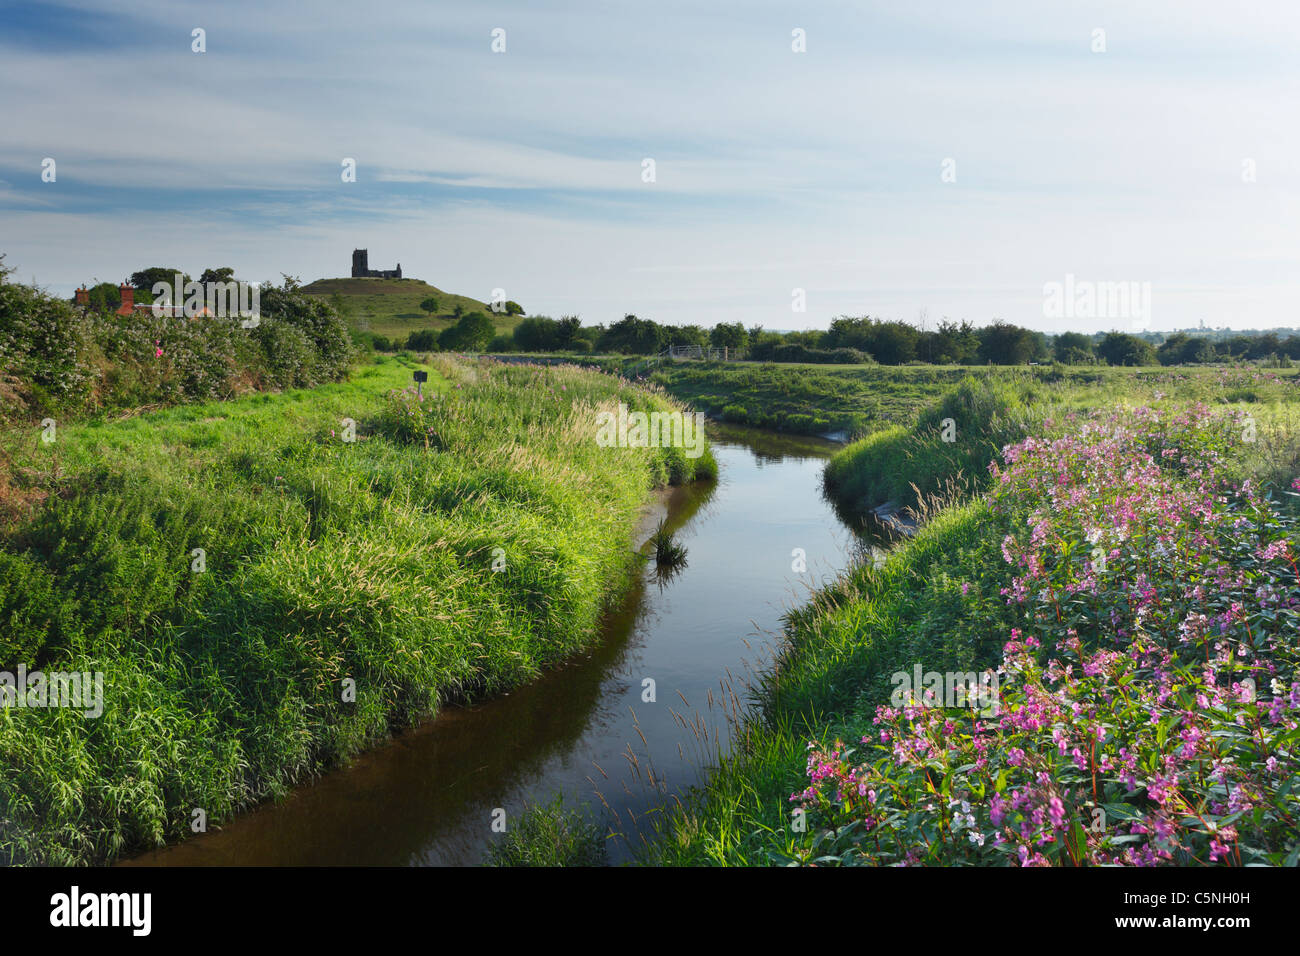 River Tone joining the River Parrett with Burrow Mump in the Distance. Somerset. England. UK. - Stock Image